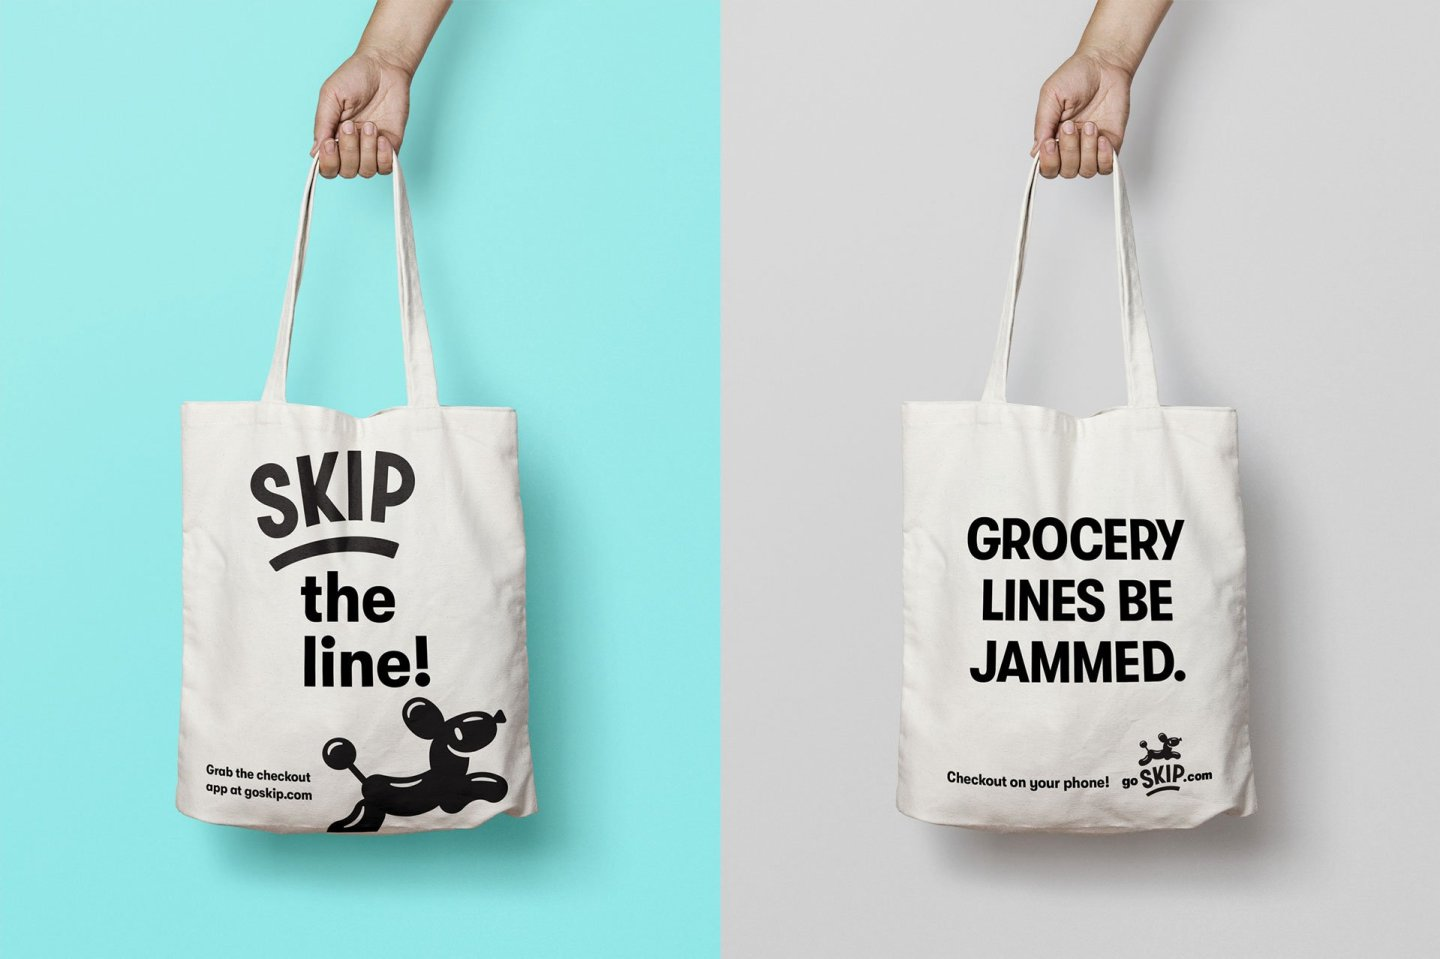 Skip checkout canvas tote grocery bag - Brand Identity by Hoodzpah Design in Orange County